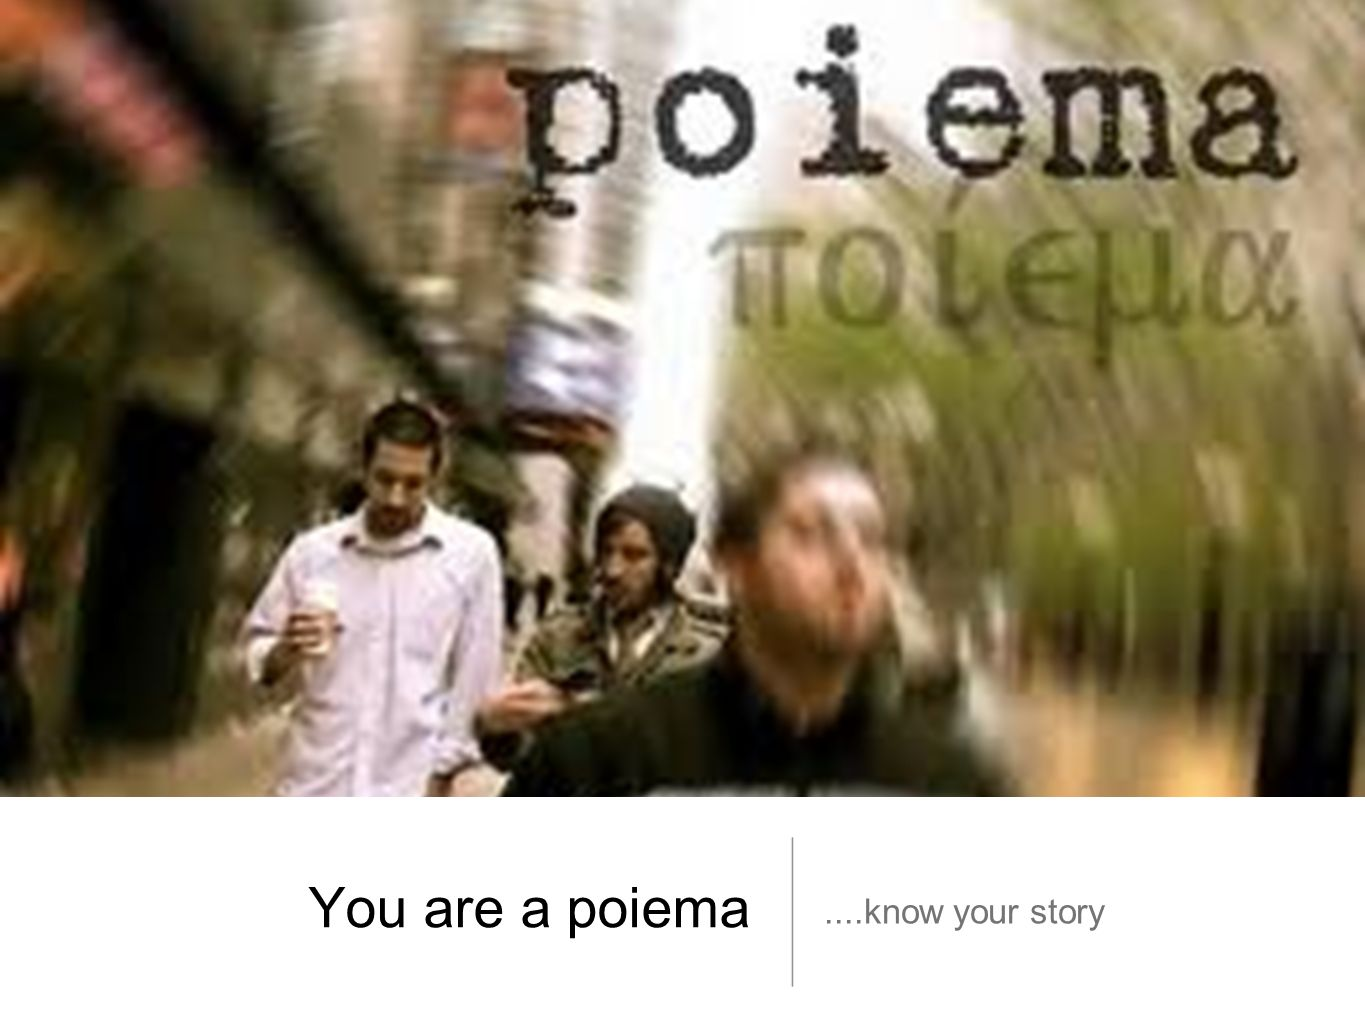 You are a poiema ....know your story